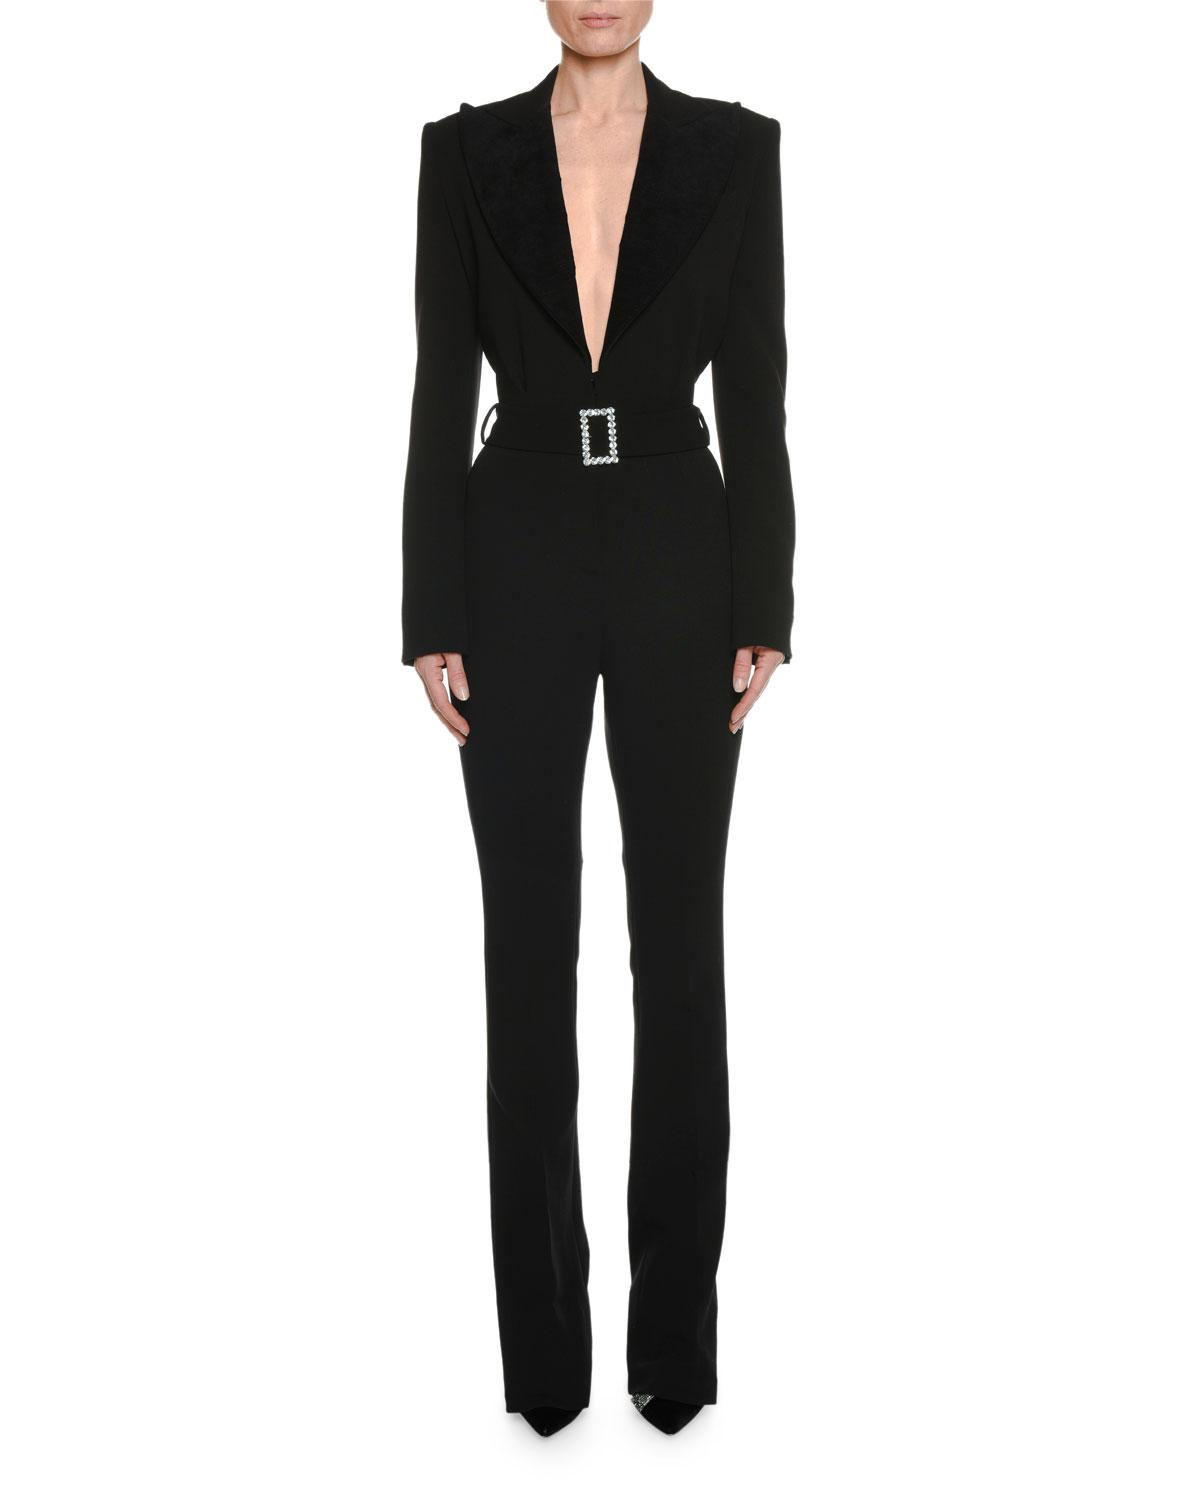 a9acffd3ca71 Tom Ford. Women s Black Long-sleeve Plunging Tuxedo Straight-leg Jumpsuit  With Velvet Lapel